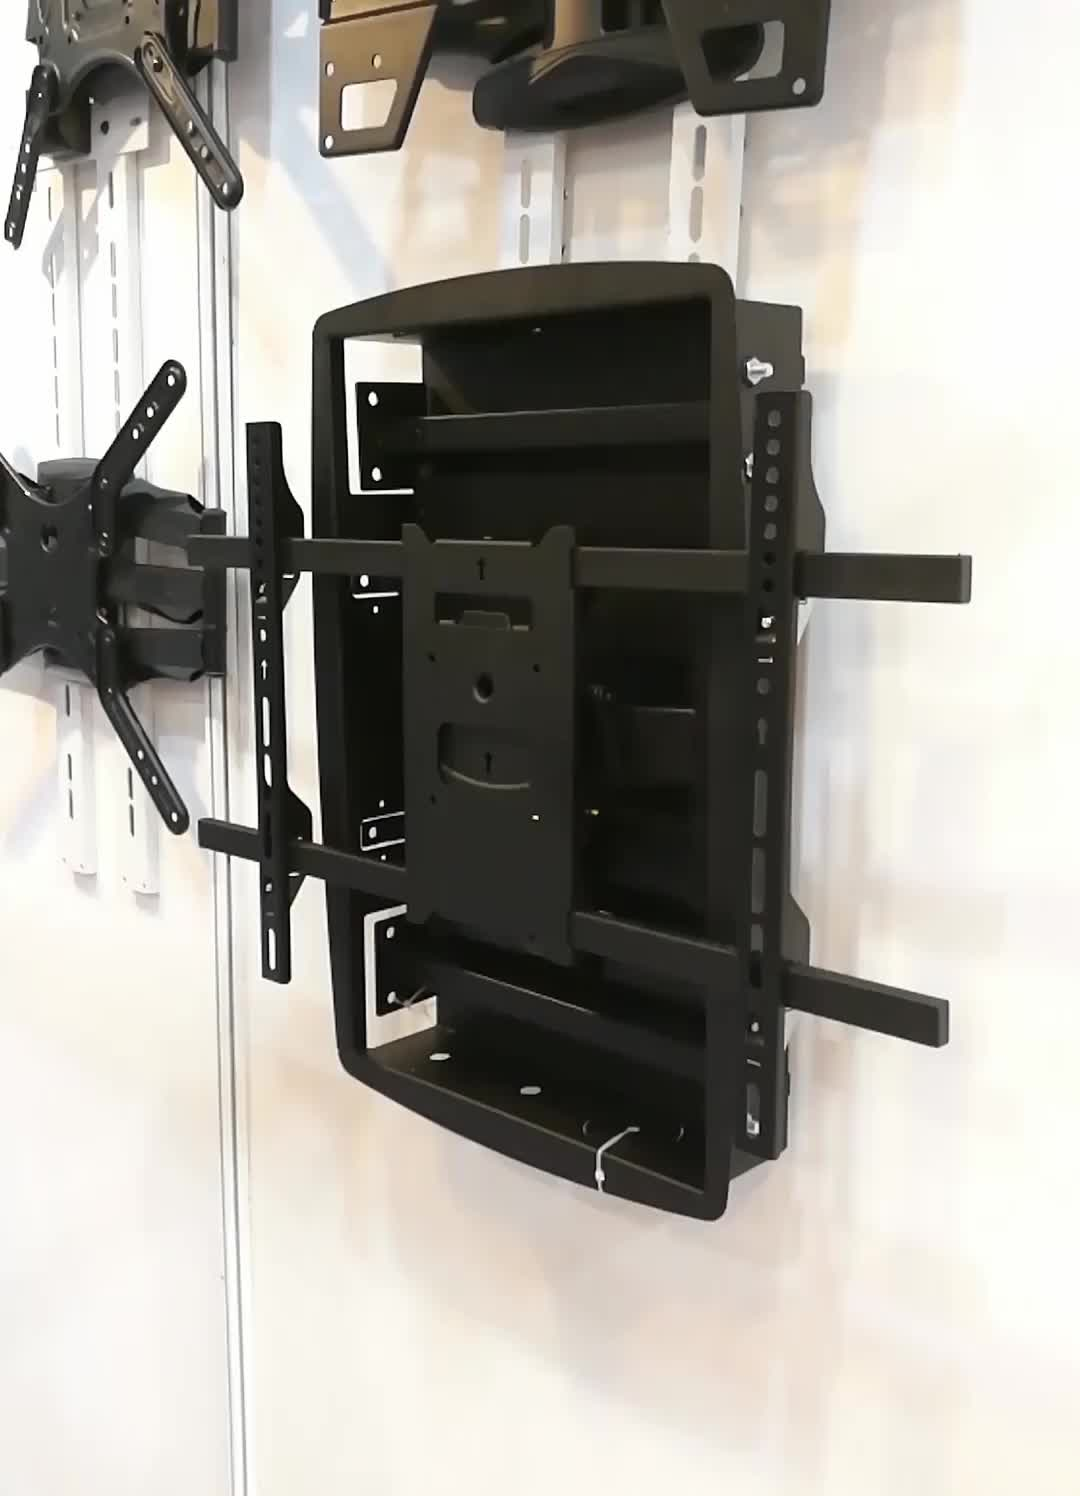 180 Degrees Swivel Recessed TV Wall Mount For Canada Market